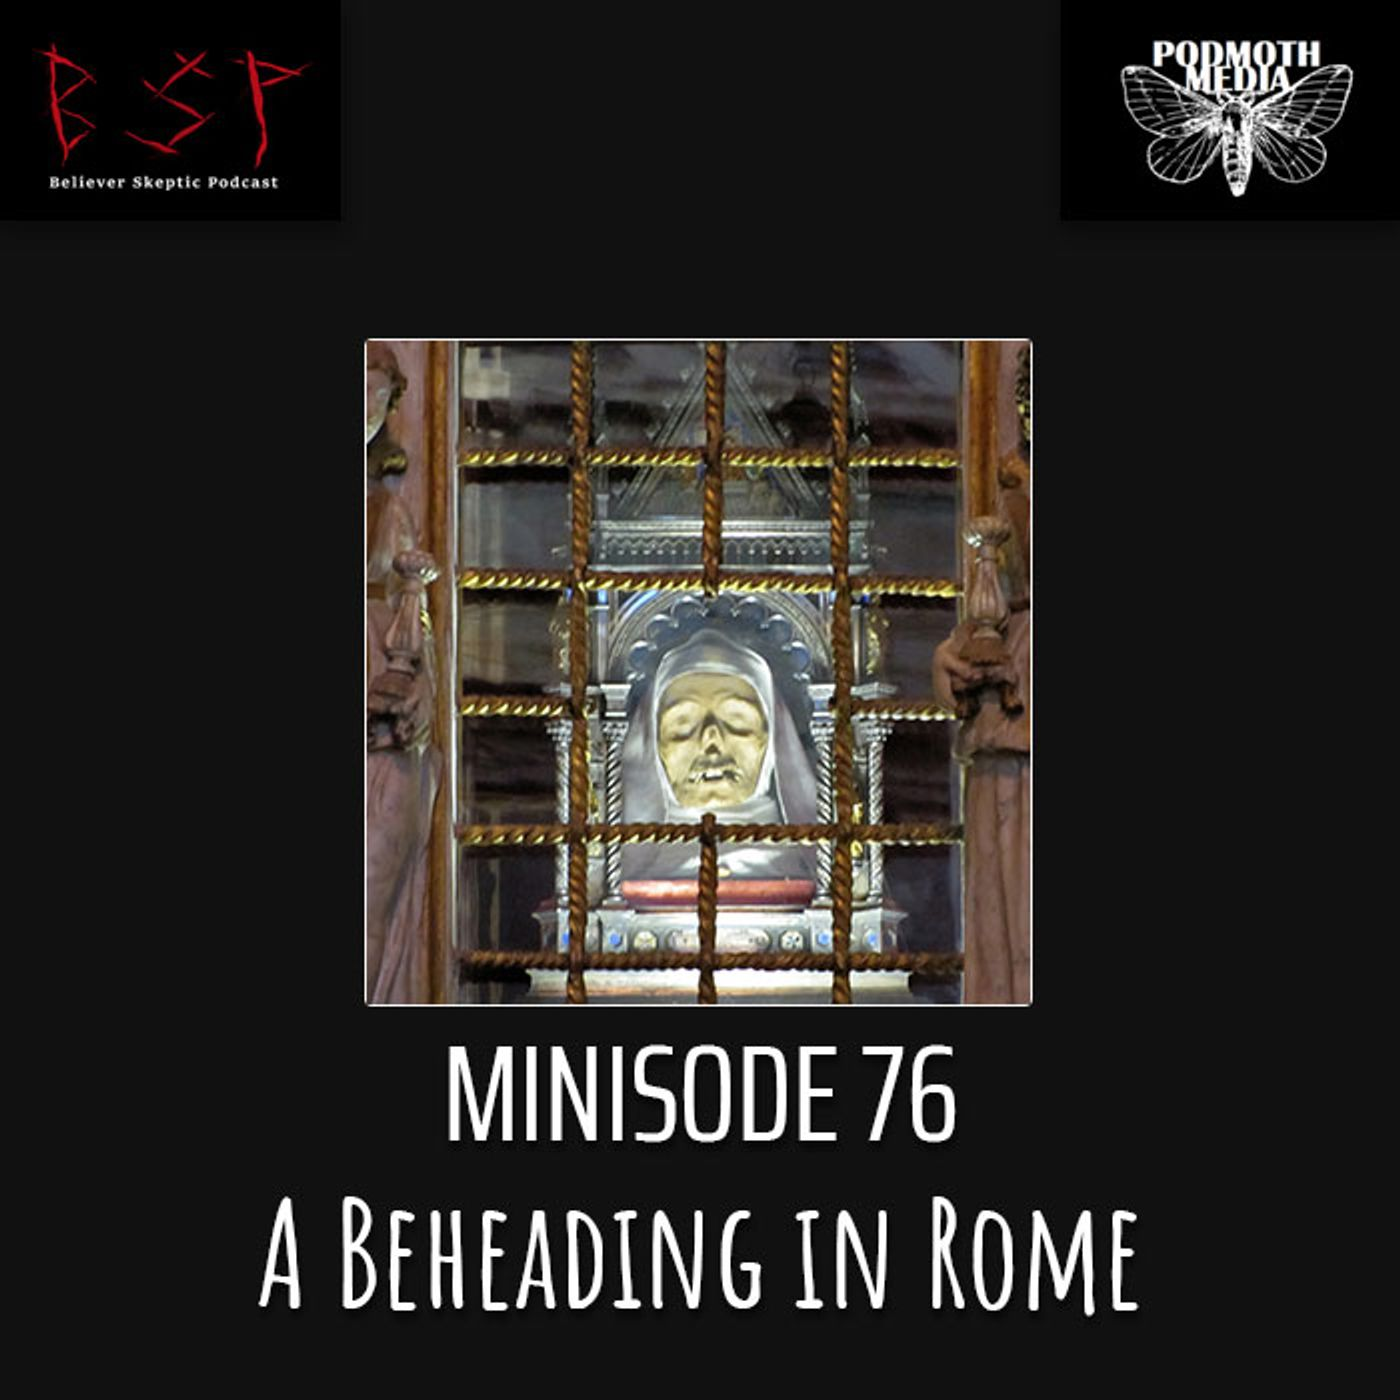 A Beheading in Rome